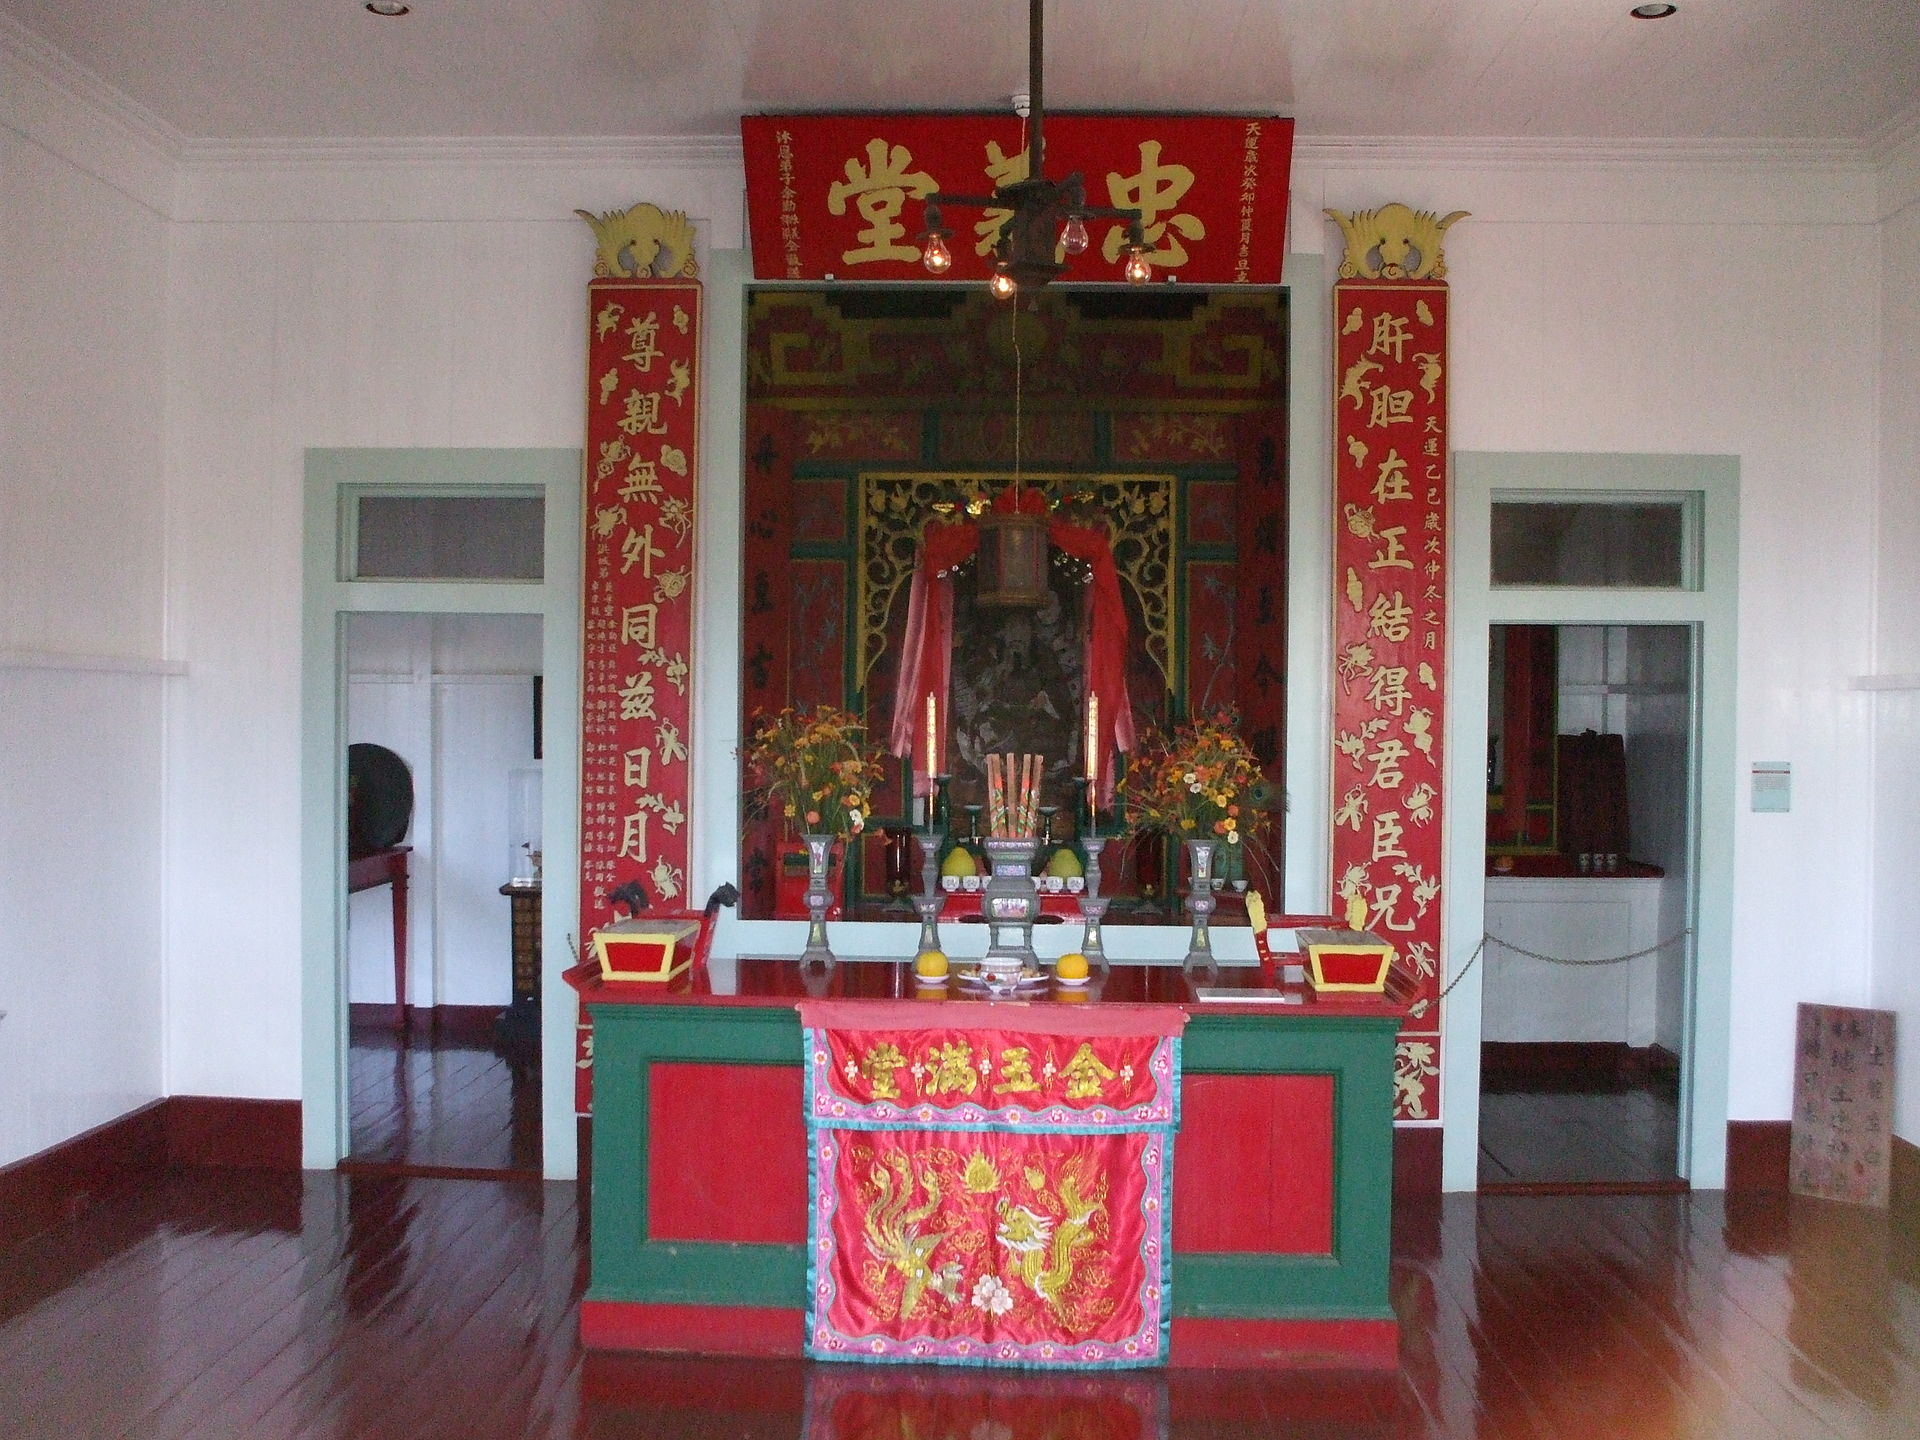 The temple on the second floor.